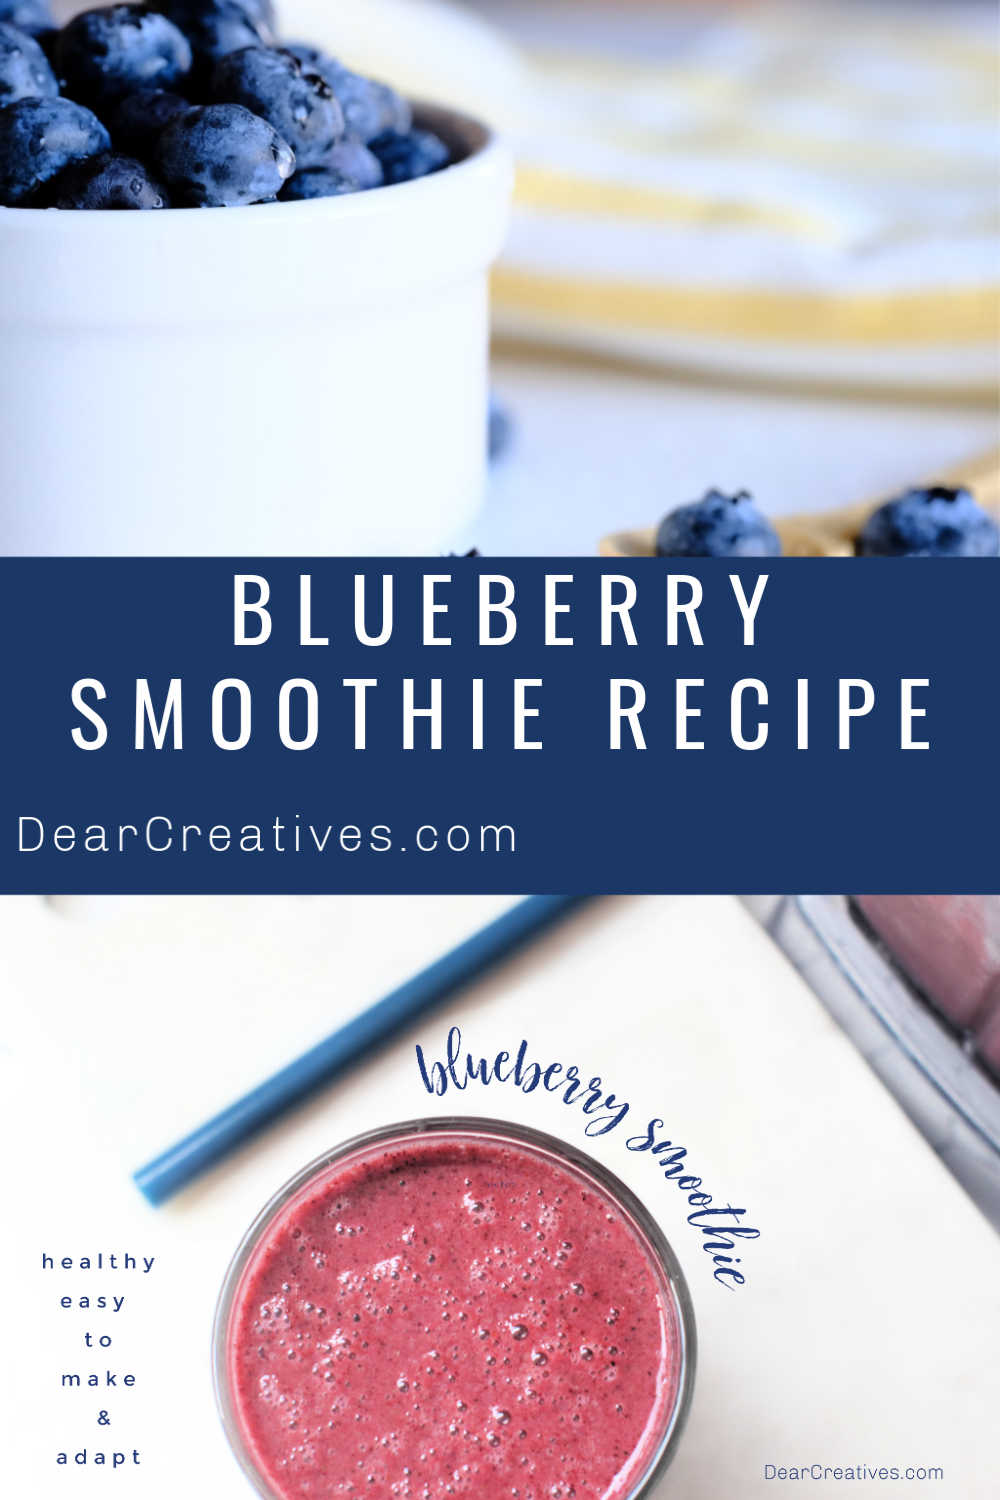 Blueberry Smoothie Recipe – Use Fresh Or Frozen Berries!